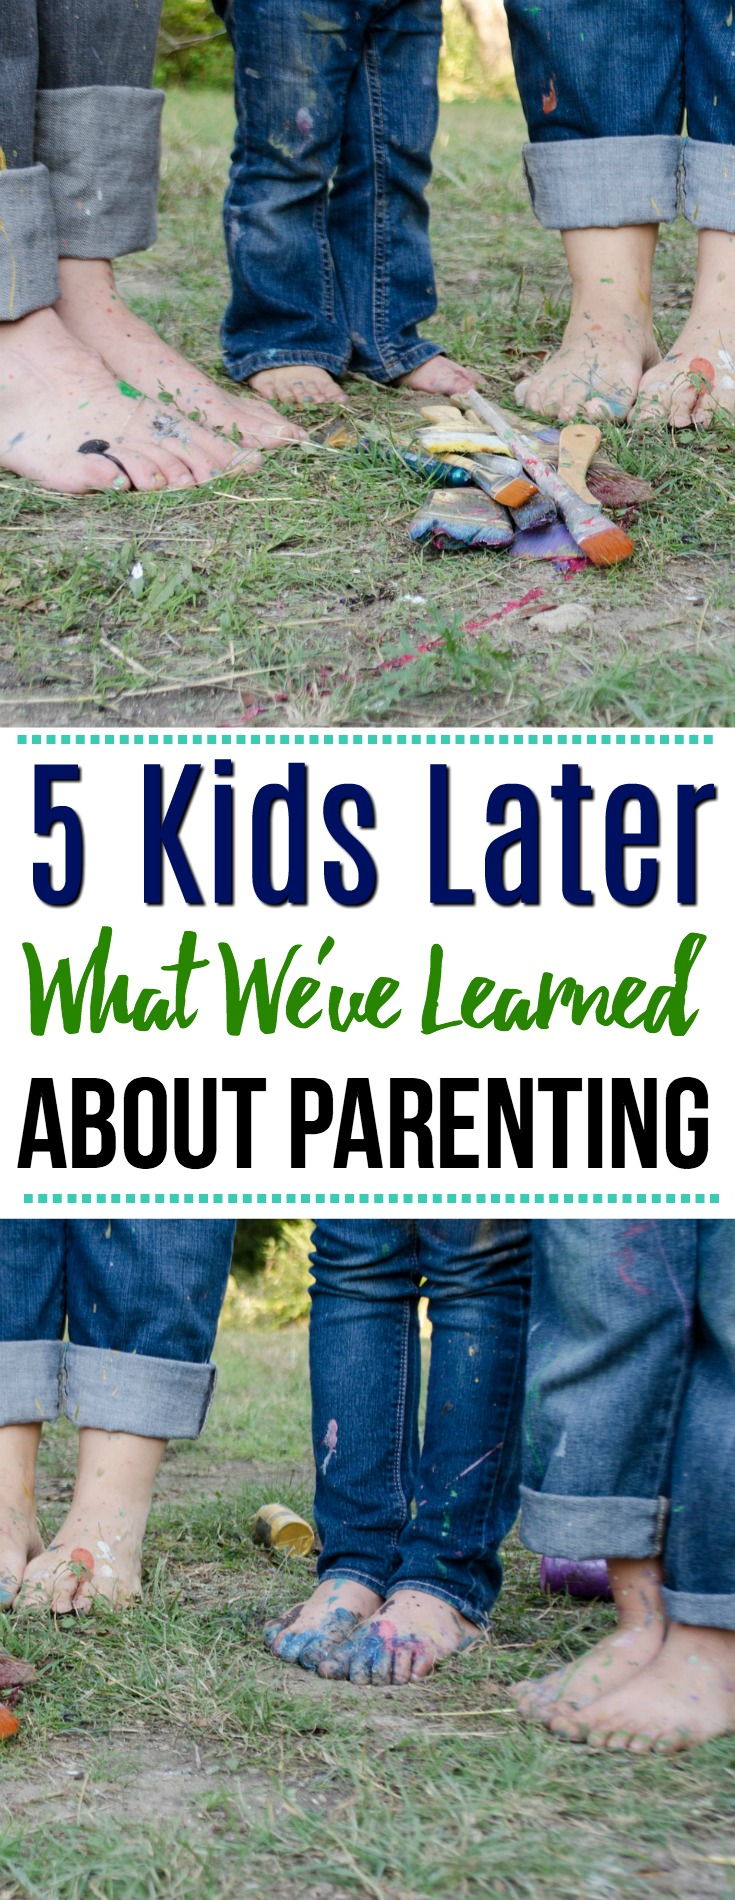 5 Kids Later: What We've Learned About Parenting